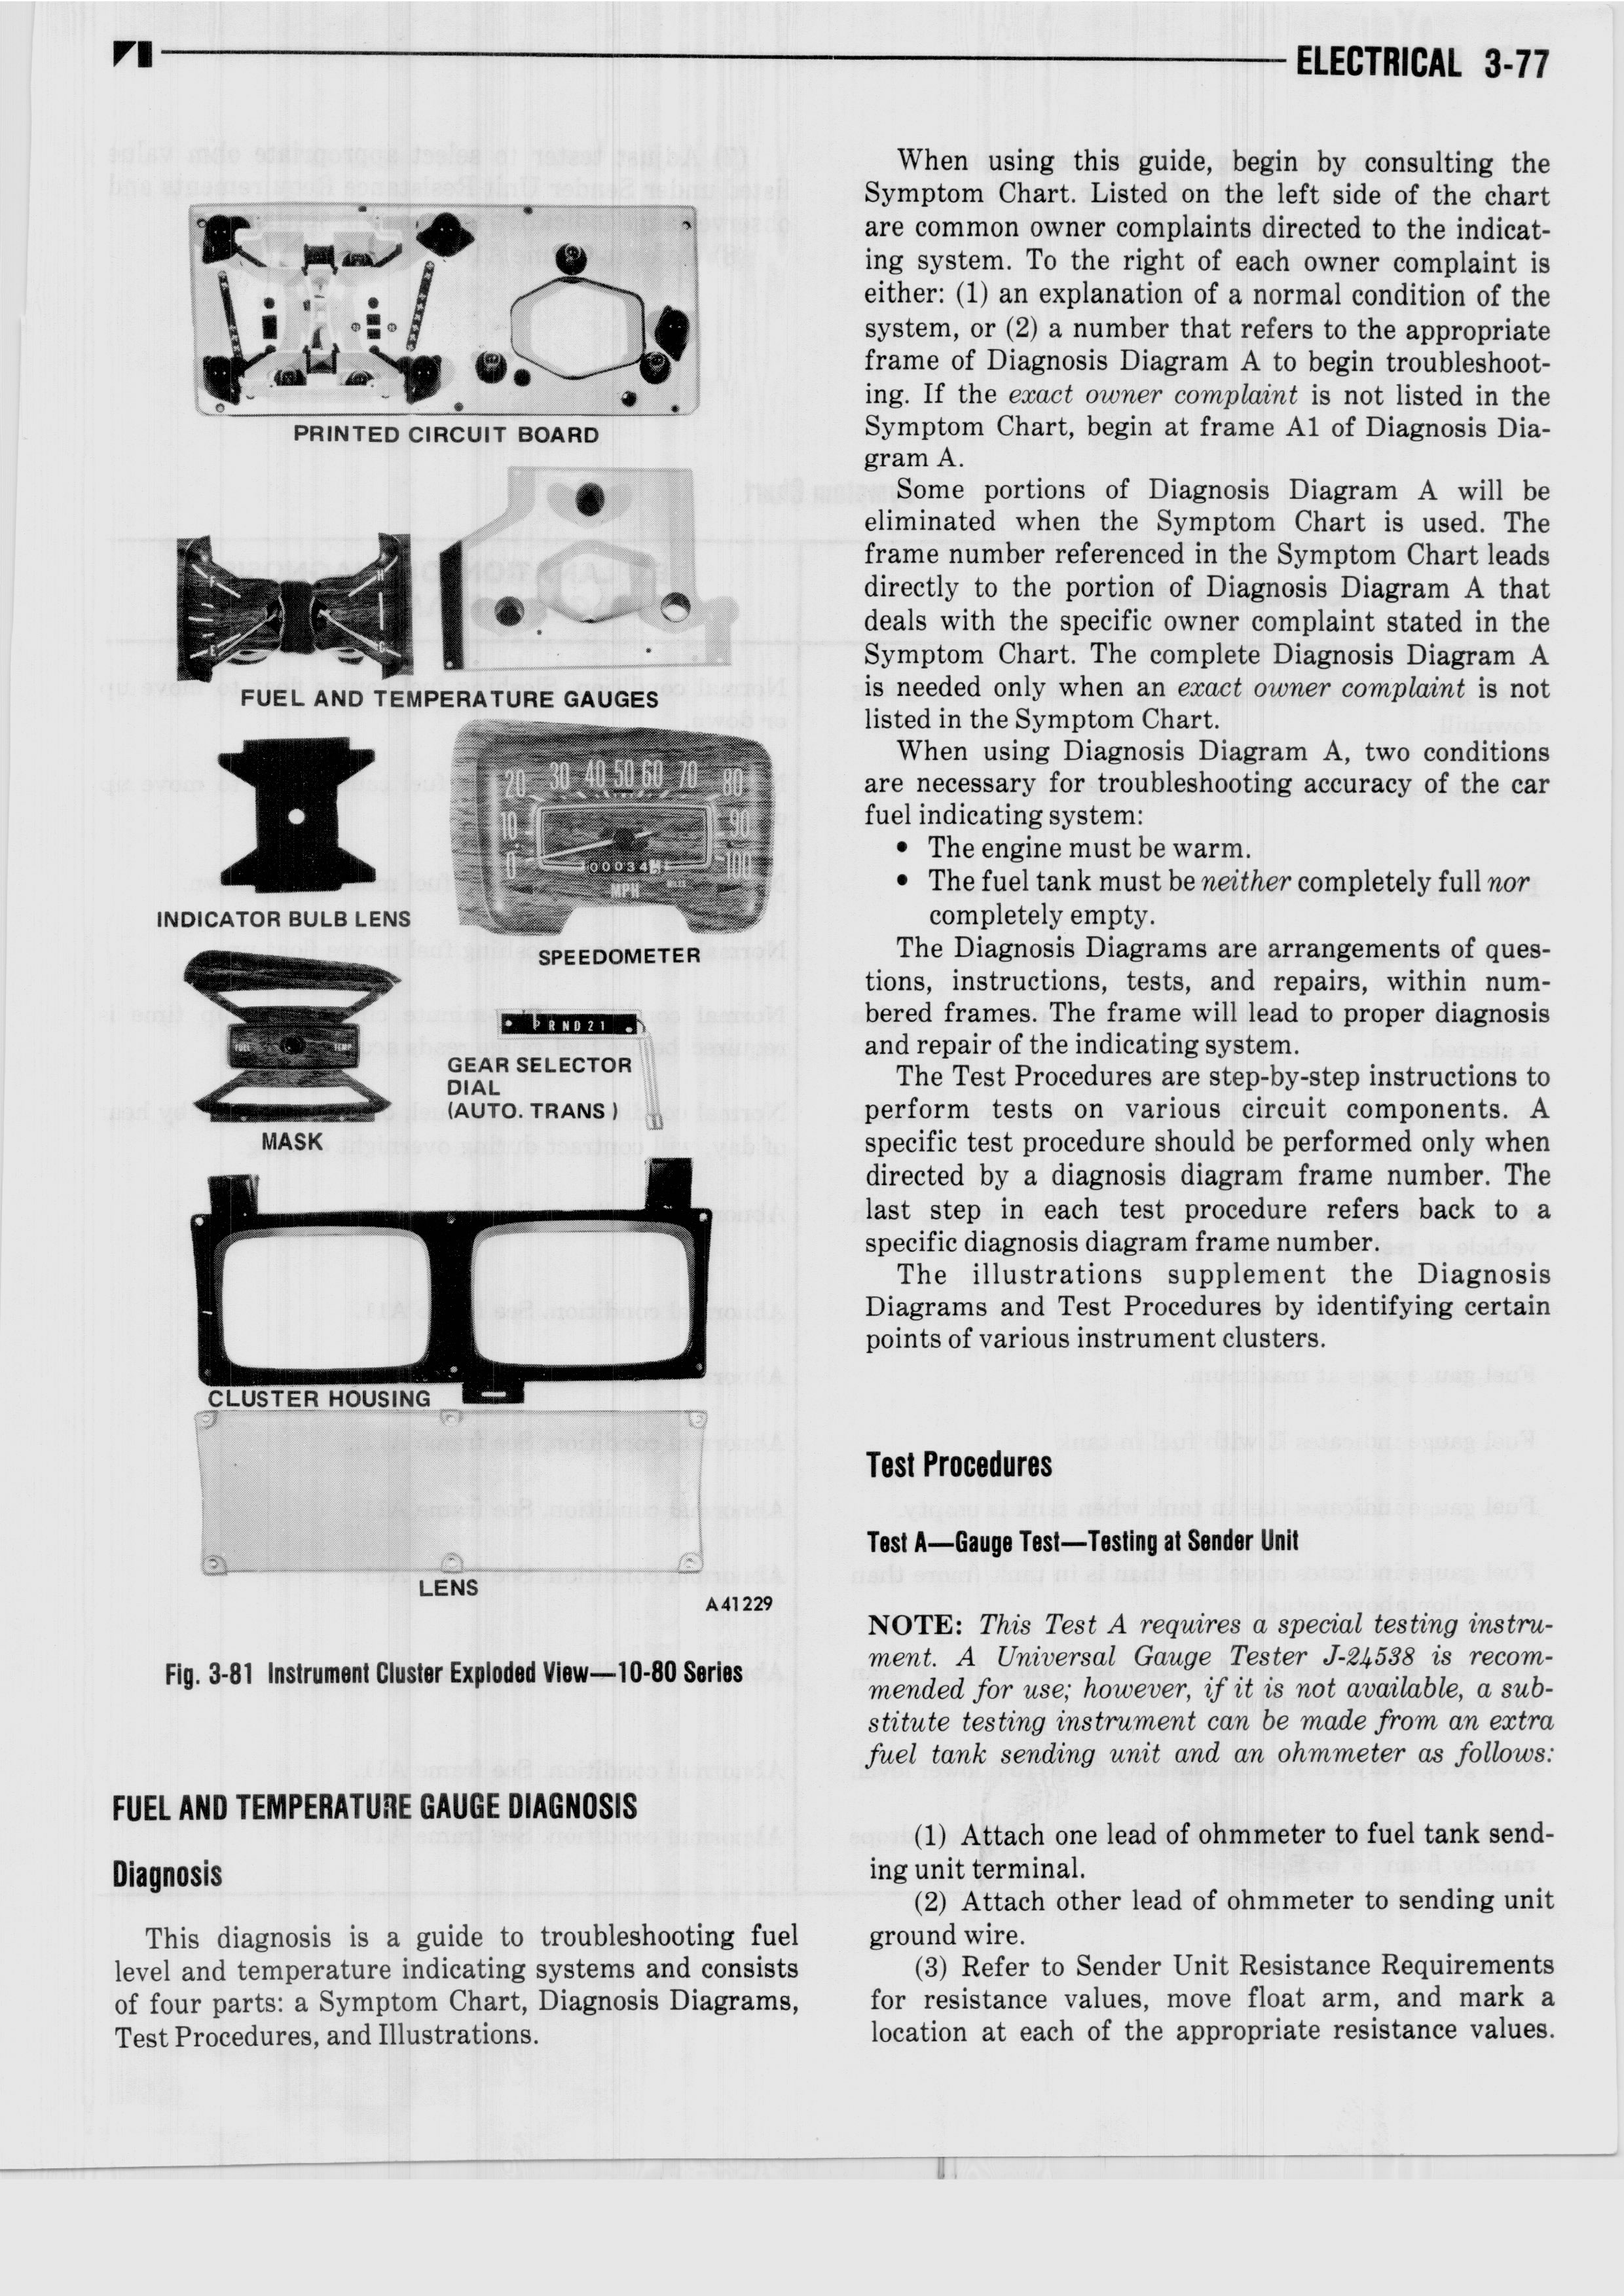 3 Electrical / 1976 AMC Technical Service Manual_Page_191.jpg